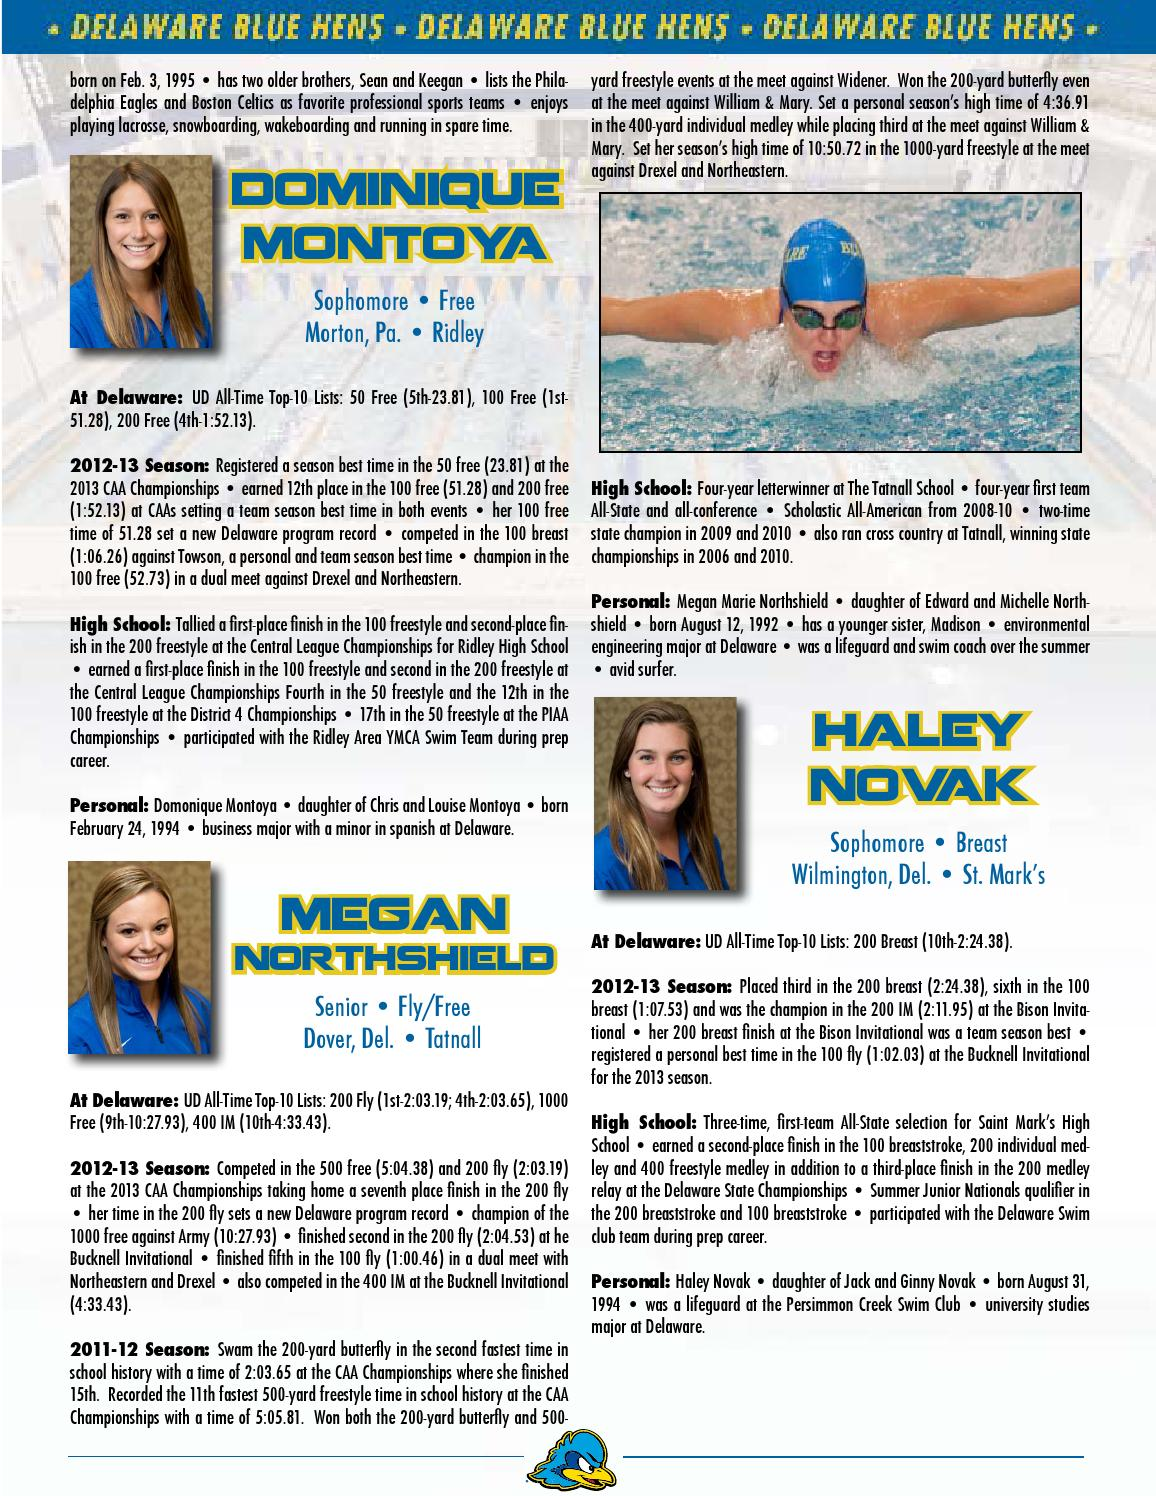 2013-14 Swimming & Diving Media Guide by UDBlueHens Delaware